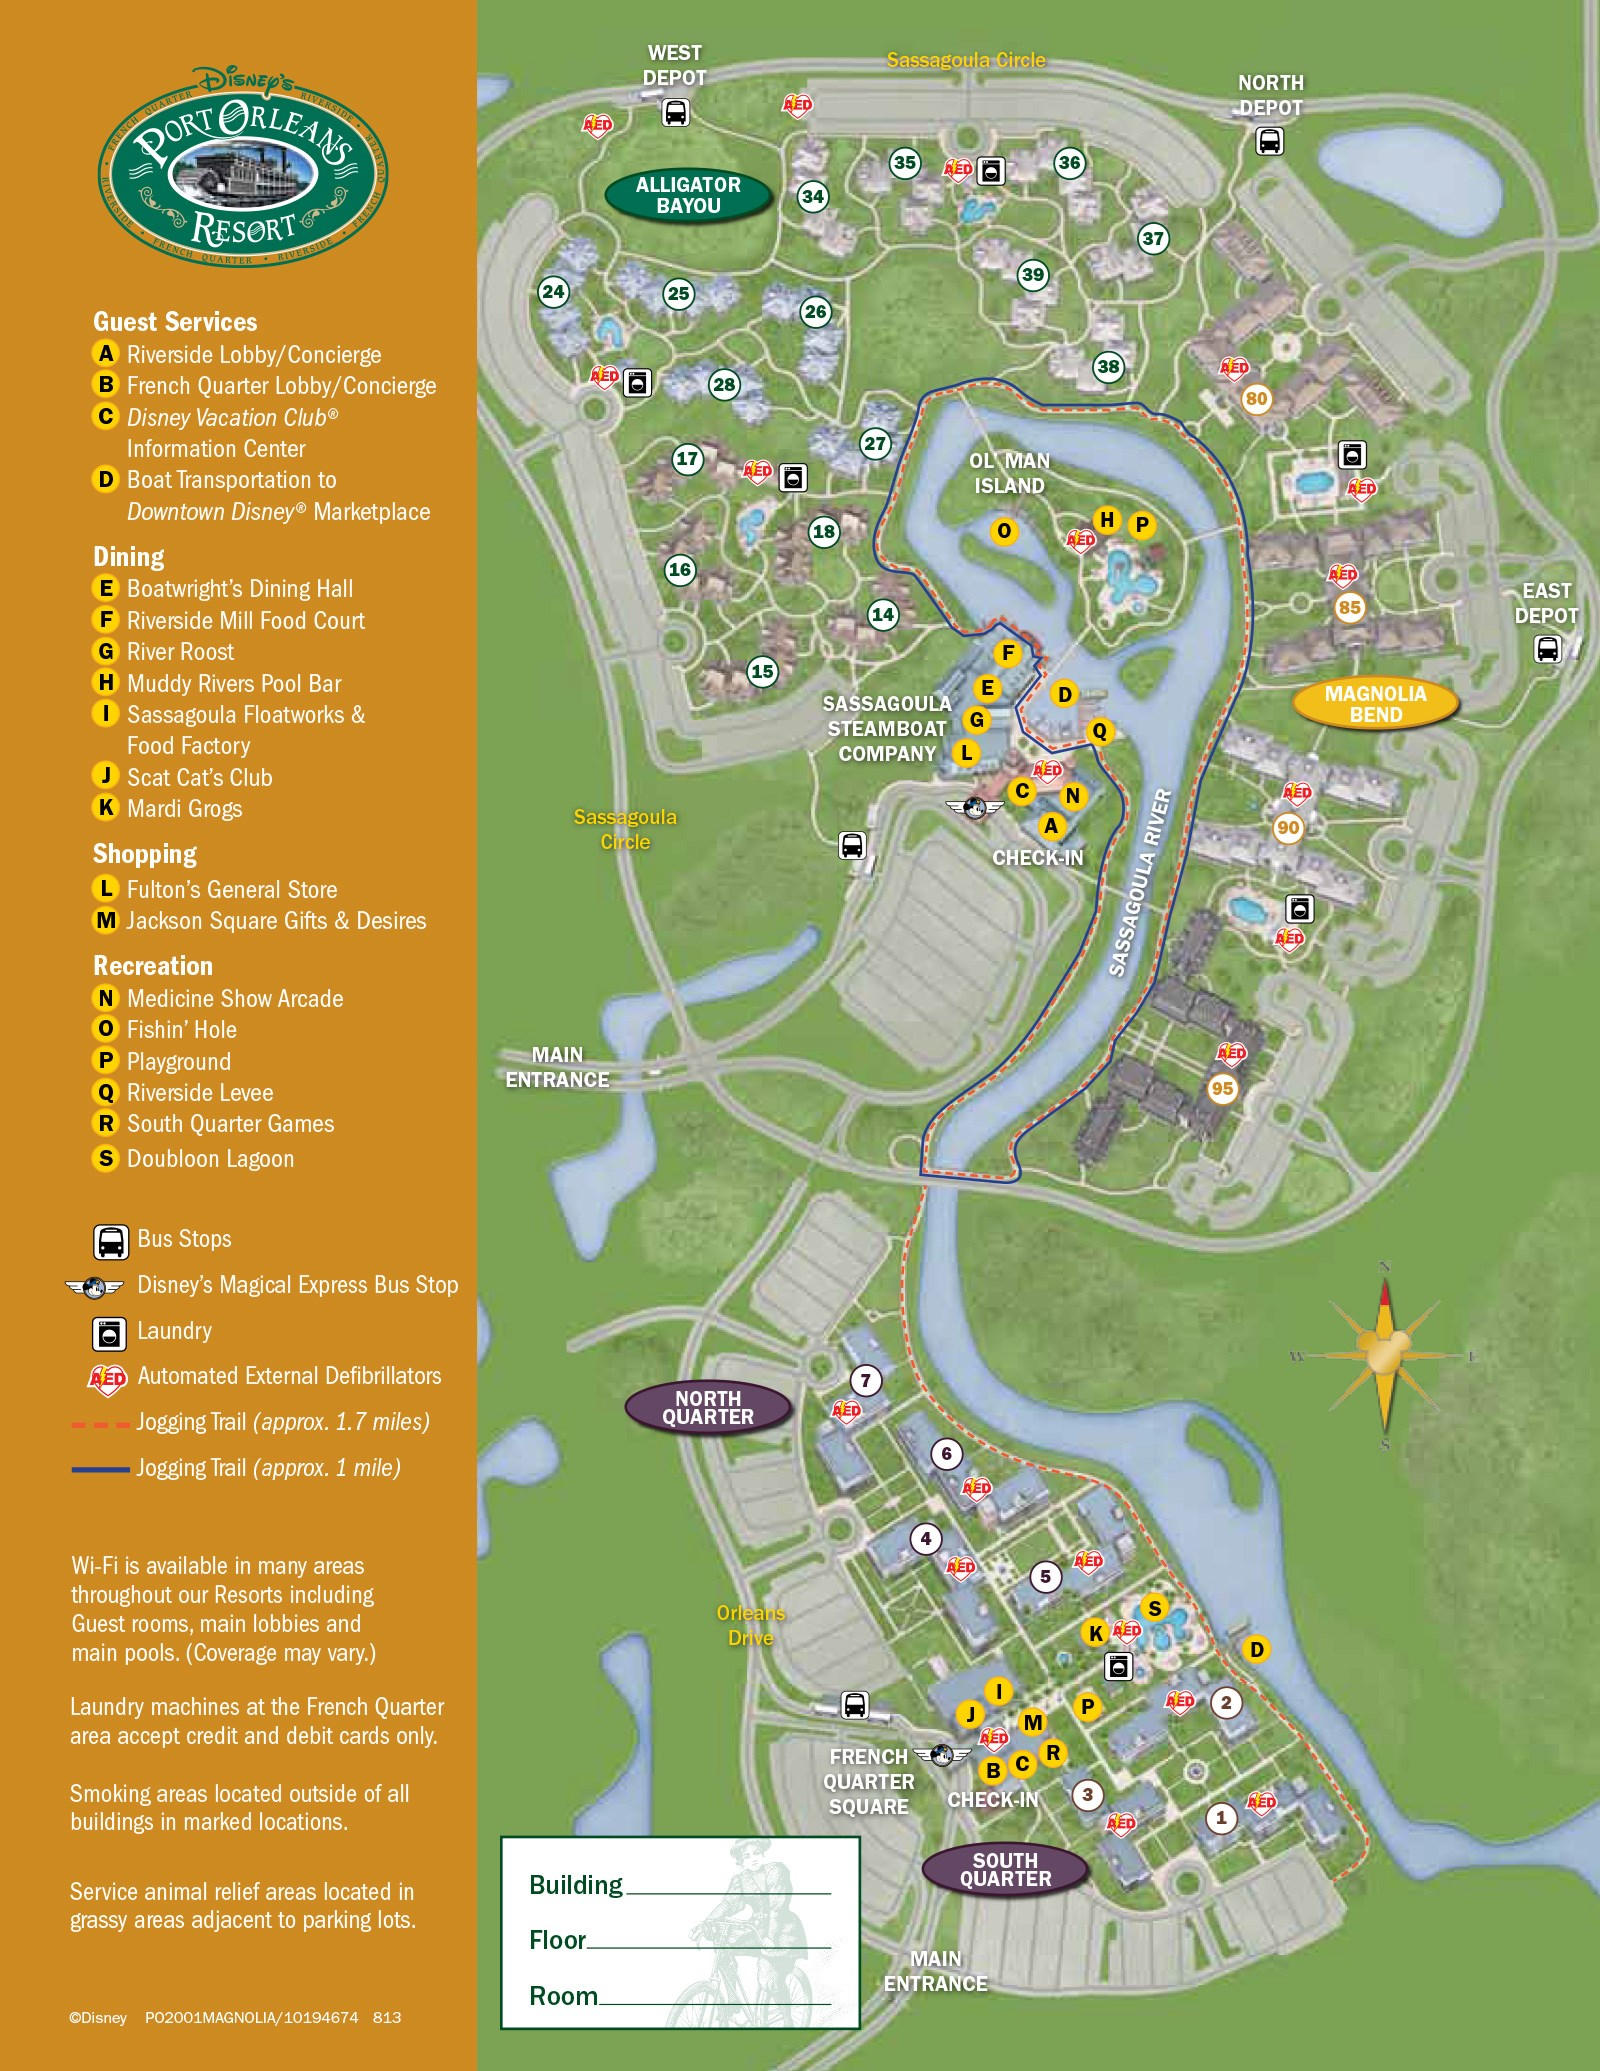 2013 Port Orleans Riverside guide map